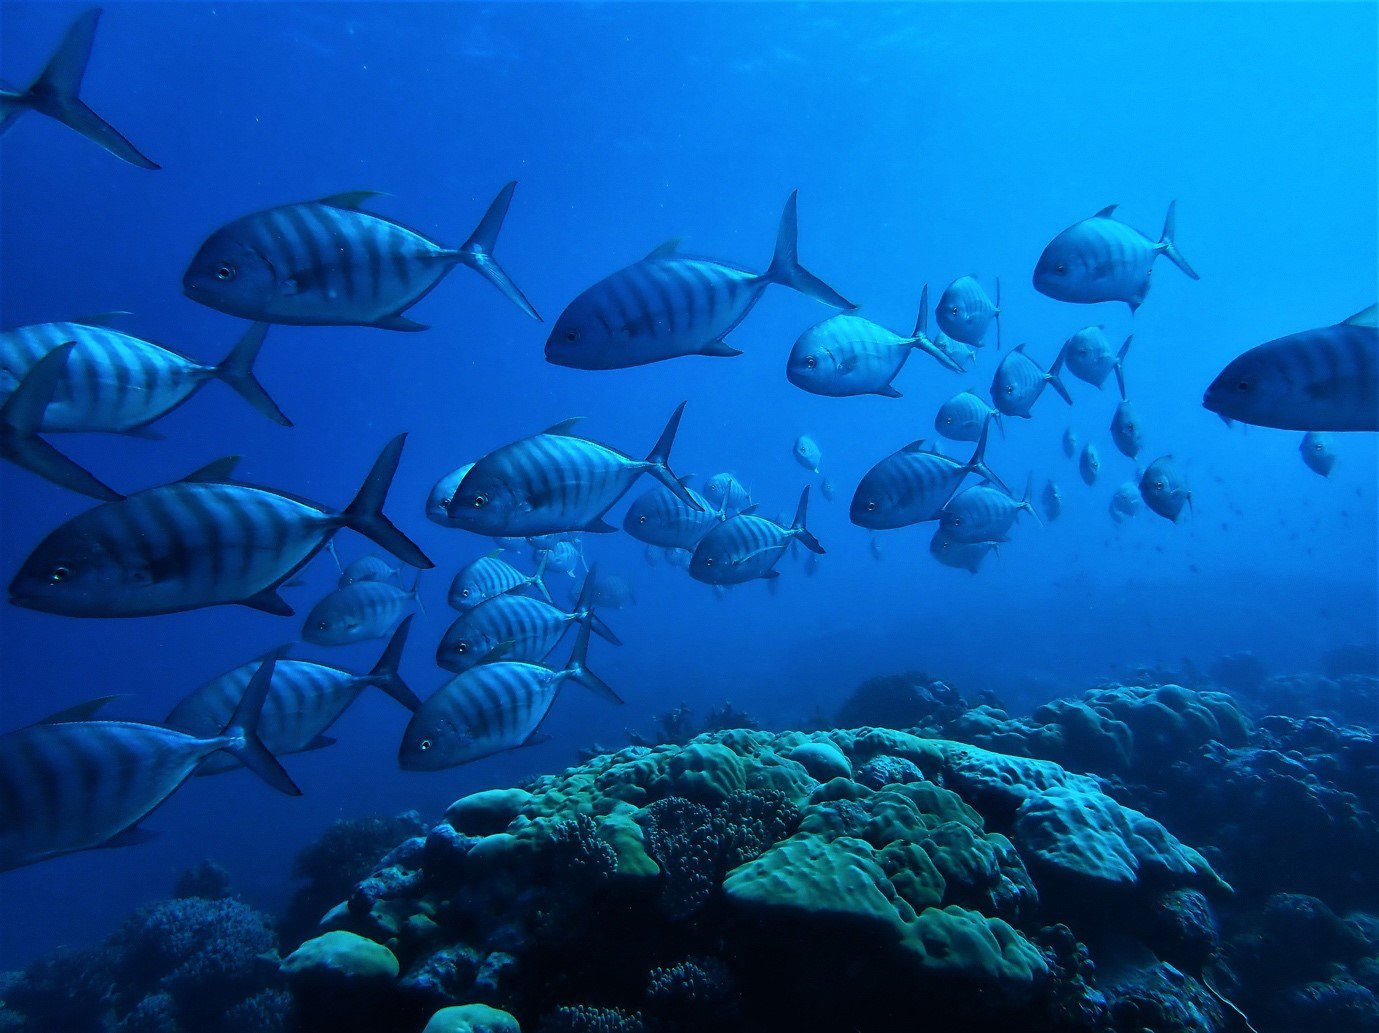 A school of golden trevally (Gnathanodon speciosus) at the Cocos (Keeling) Islands.